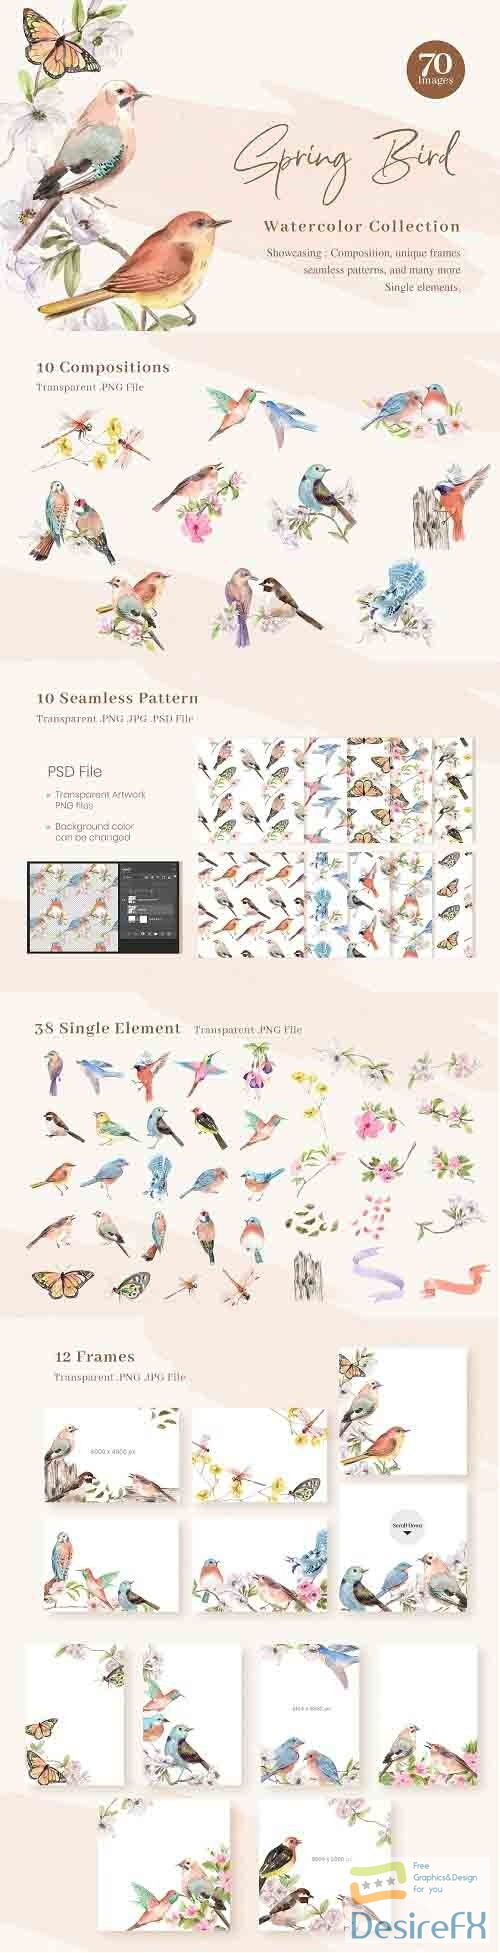 Spring Birds of Spring Watercolor - 6114931